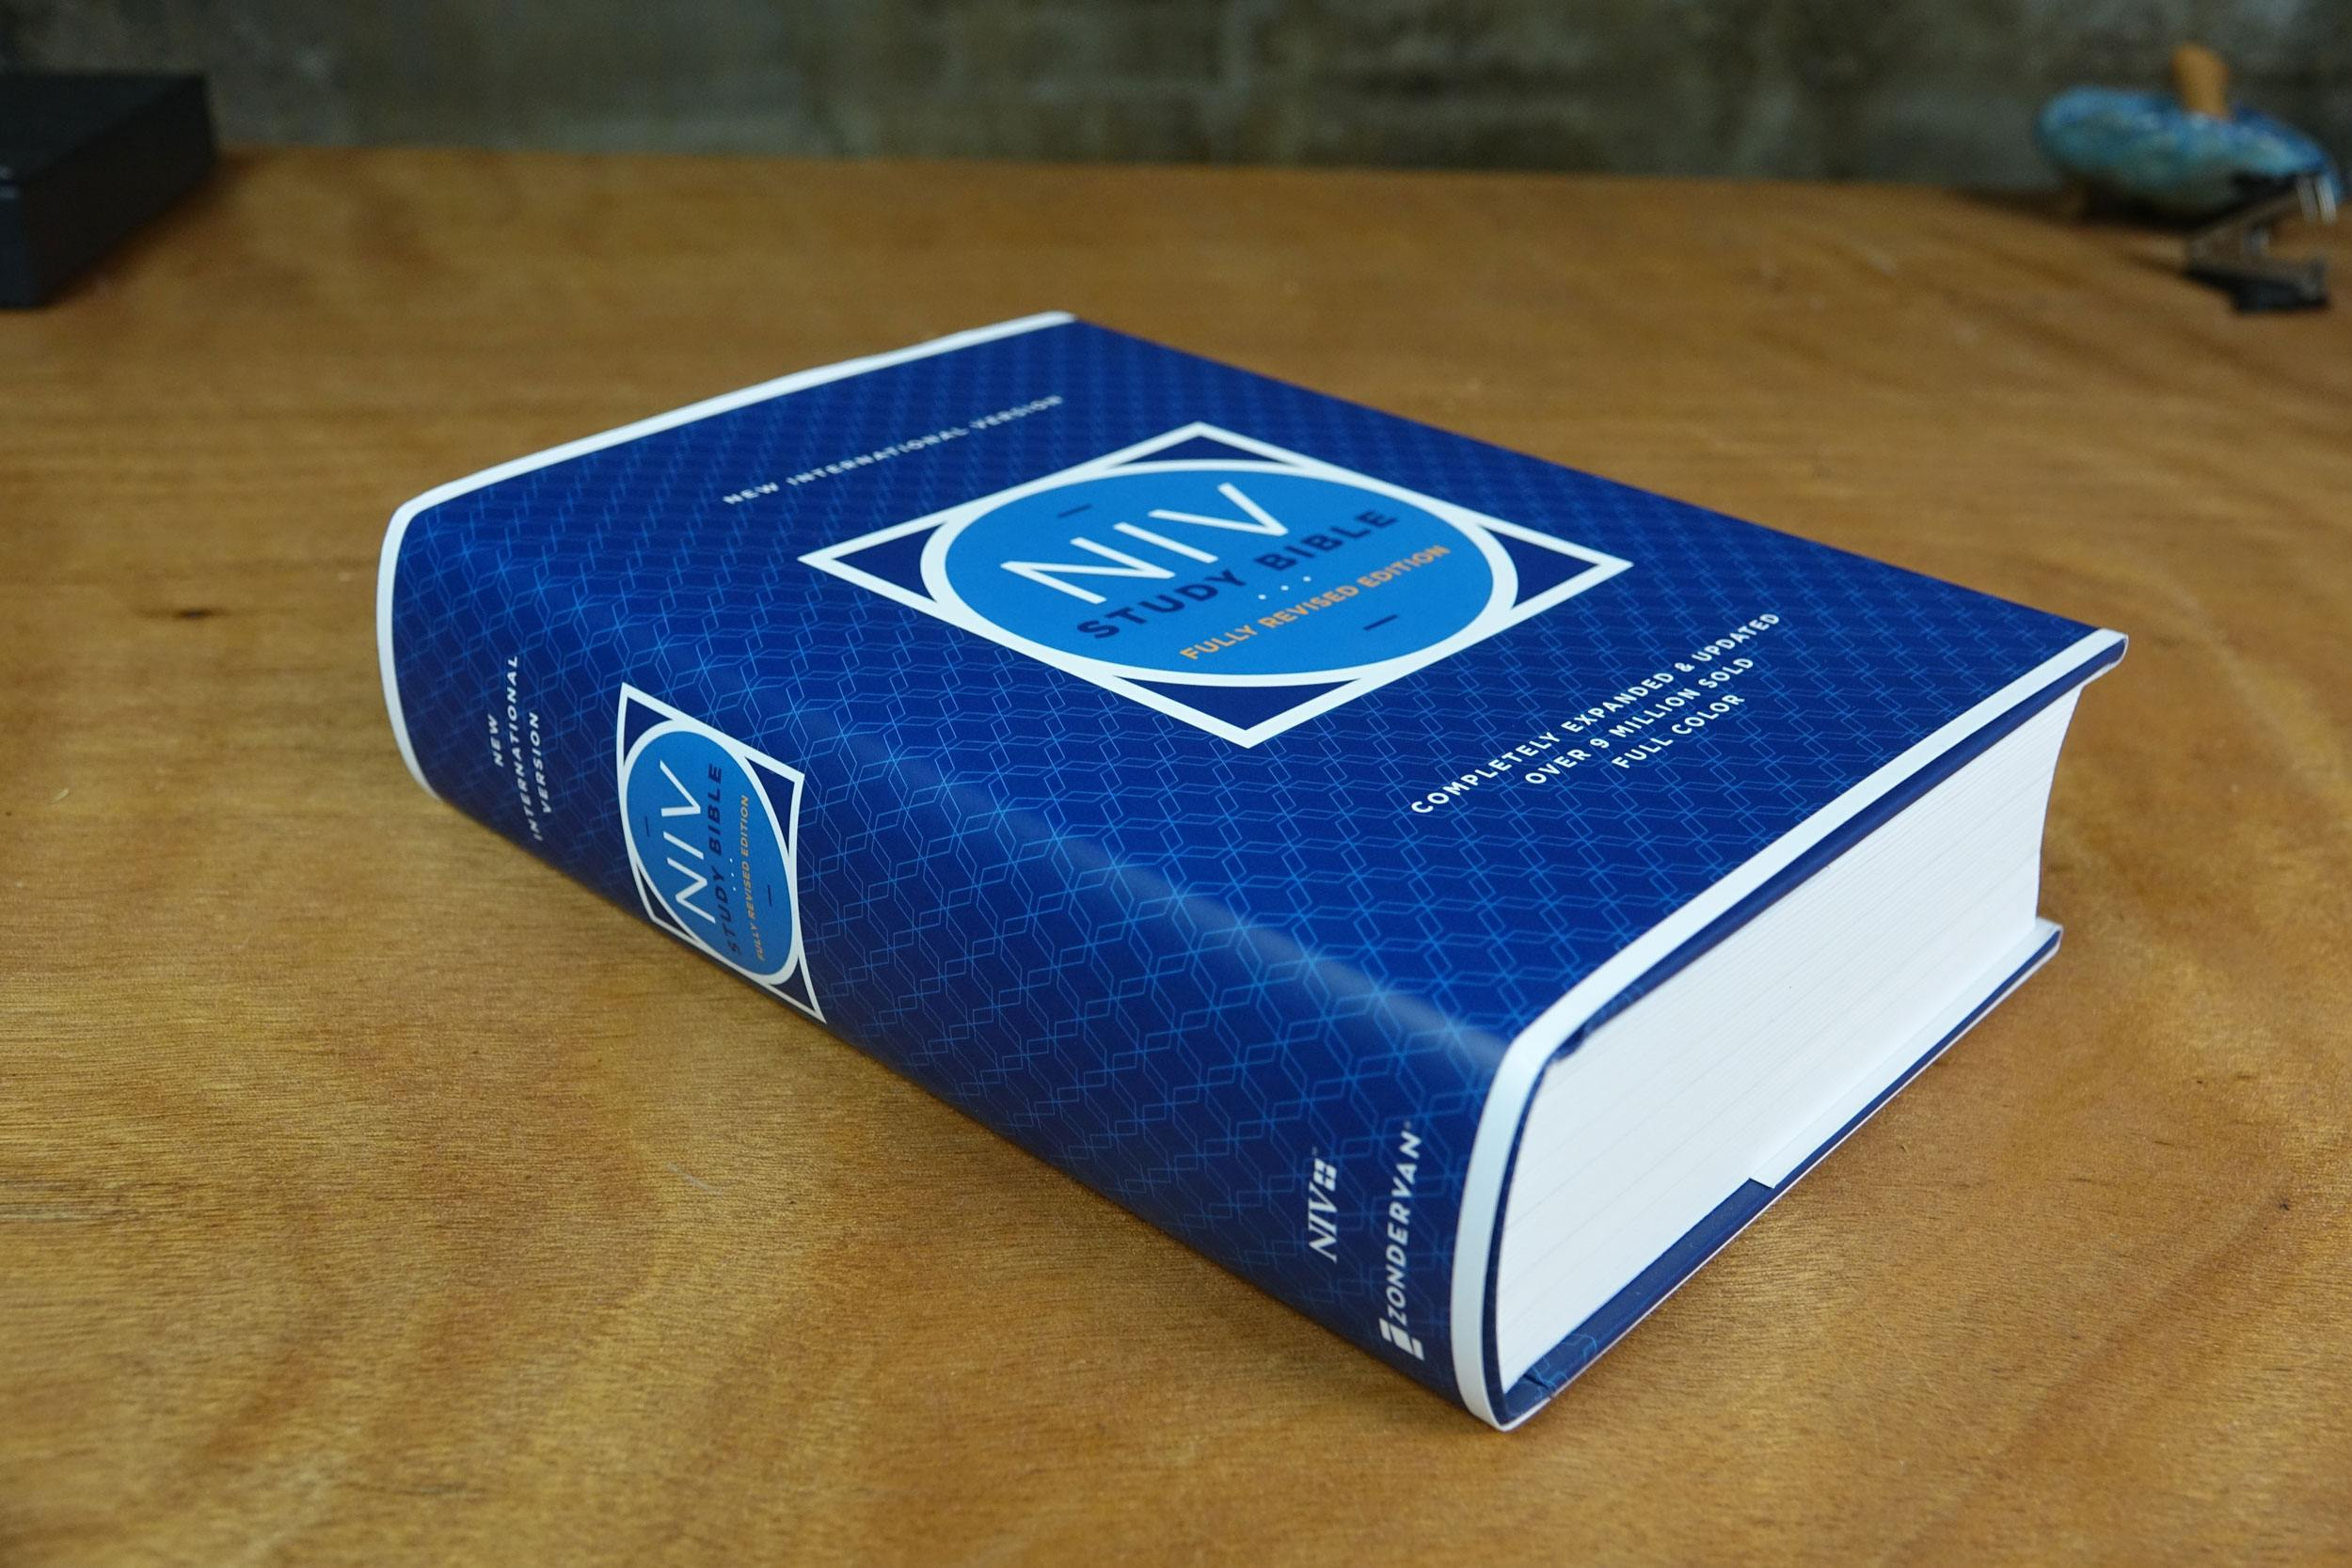 the NIV Study Bible, Fully Revised Edition is heavy